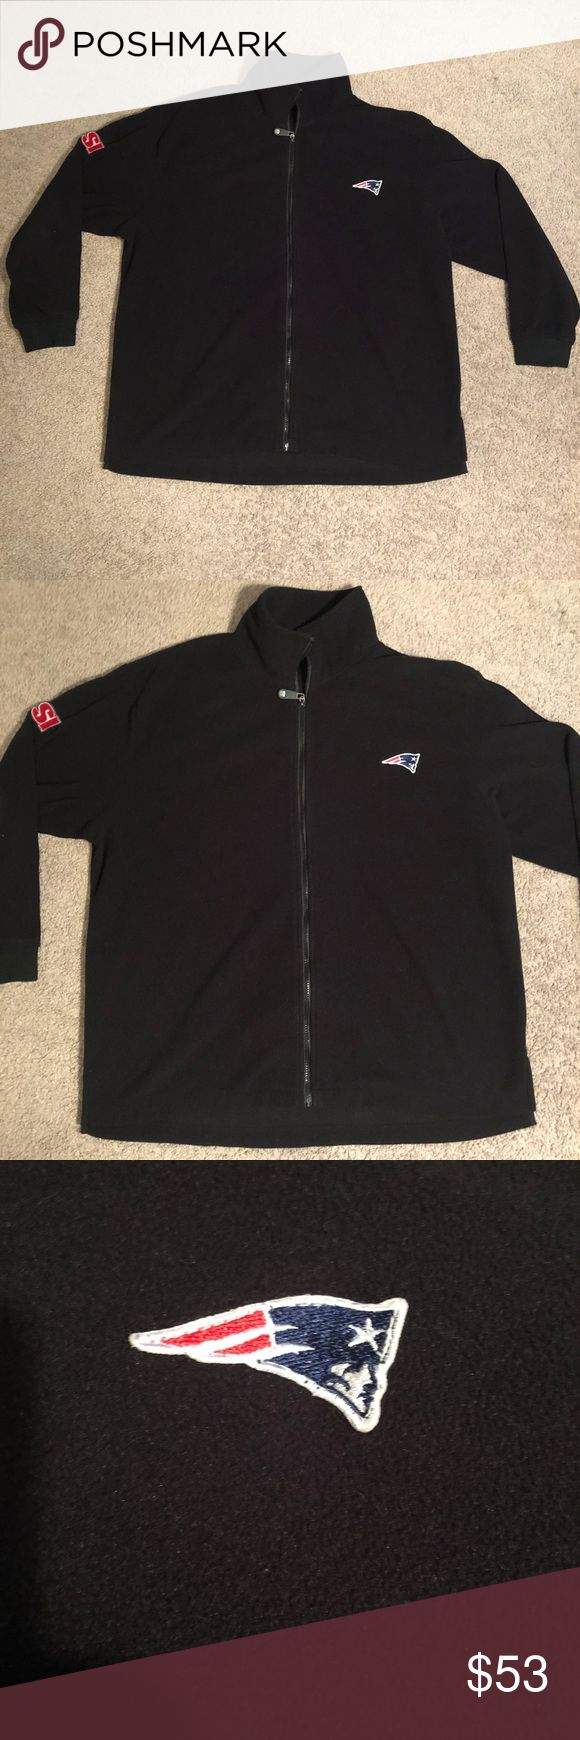 Men's NFL New England Patriots fleece XL black Please see pictures for condition.  Very good condition.   New England patriots fleece.  Xl.  Warm and comfy. NFL Sweaters Zip Up